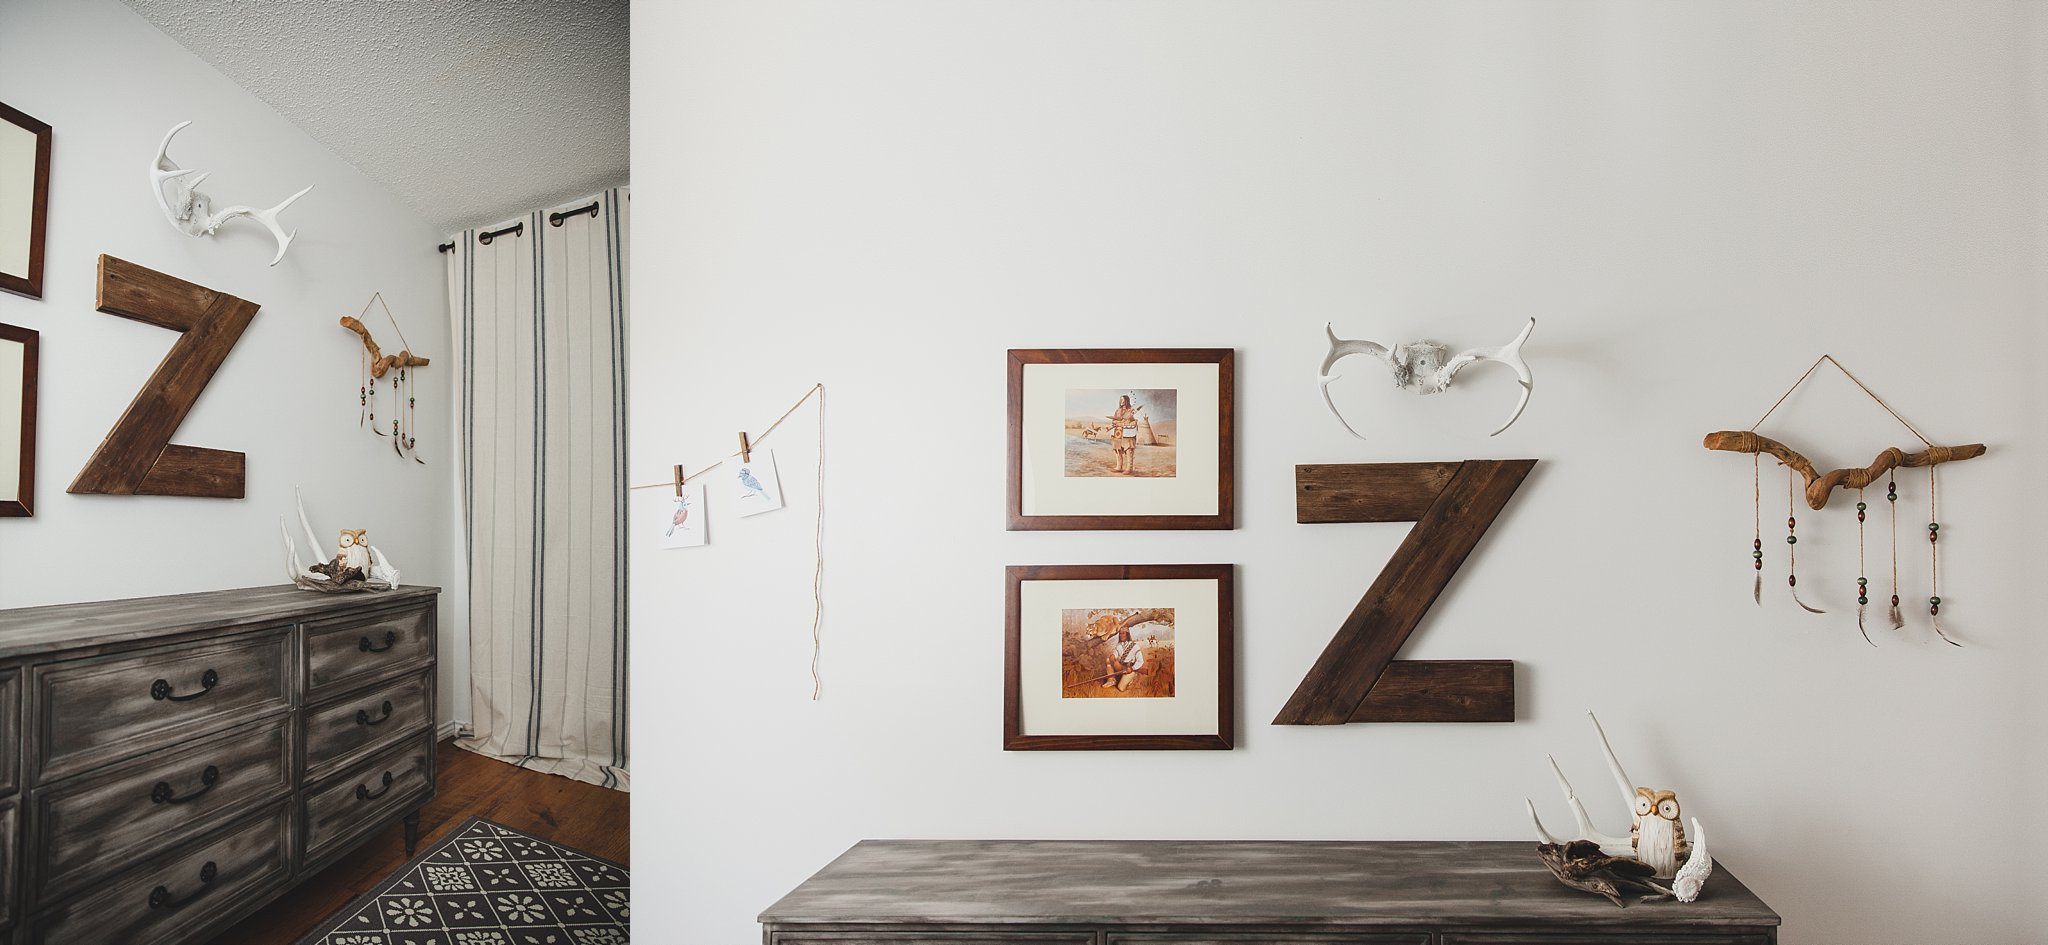 A picture of a rustic modern nursery vignette featuring a wooden letter Z, antlers and framed artwork. Photographed by Rachael Little Photography in Woodstock, Ontario.